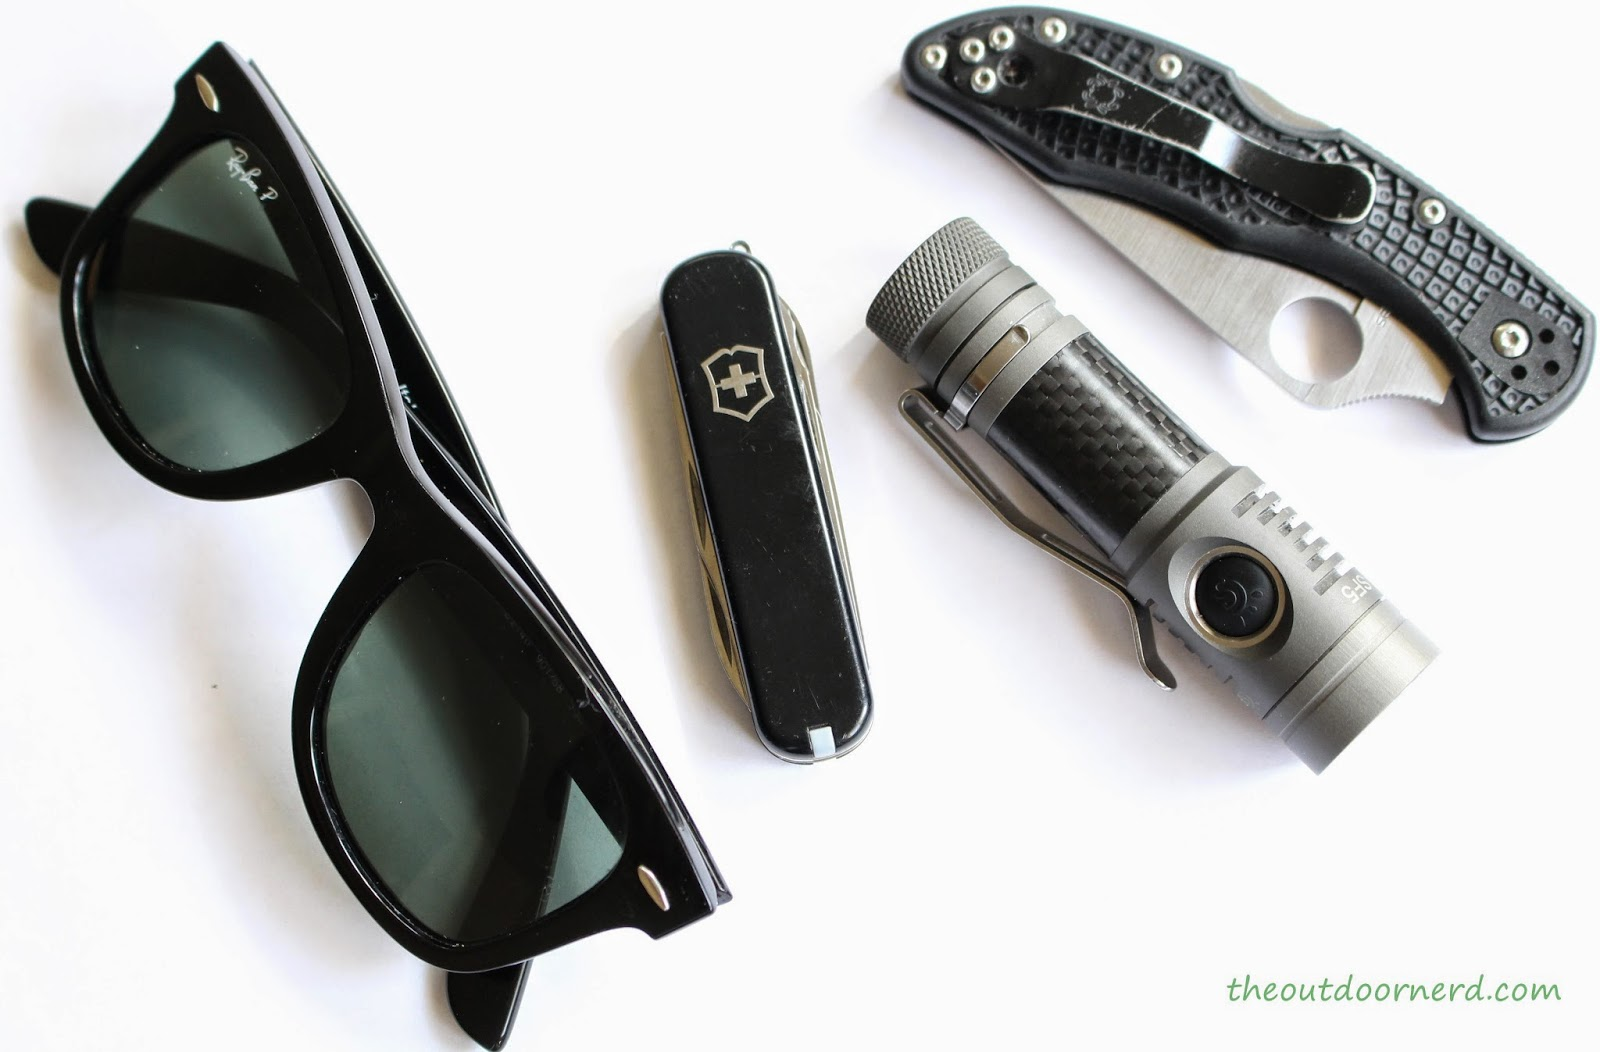 Spark SF5 1xAA Flashlight: Shown With Victorinox Executive, Spyderco Delica and RayBan Wayfarers